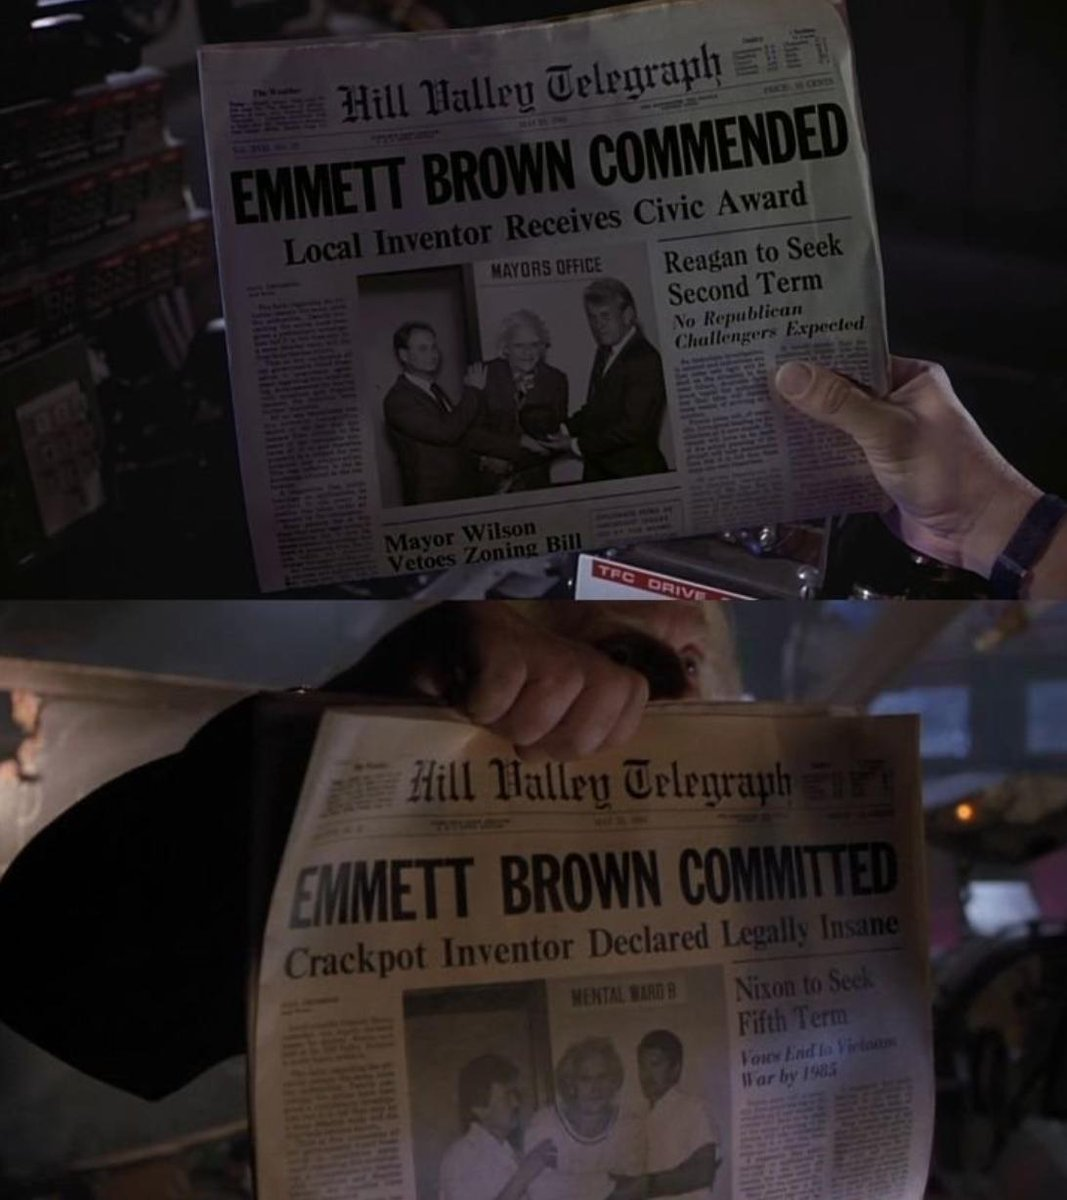 May 22nd. Important day for Doc Brown in 1983. #BackToTheFuture https://t.co/UdcZ1HEQhc